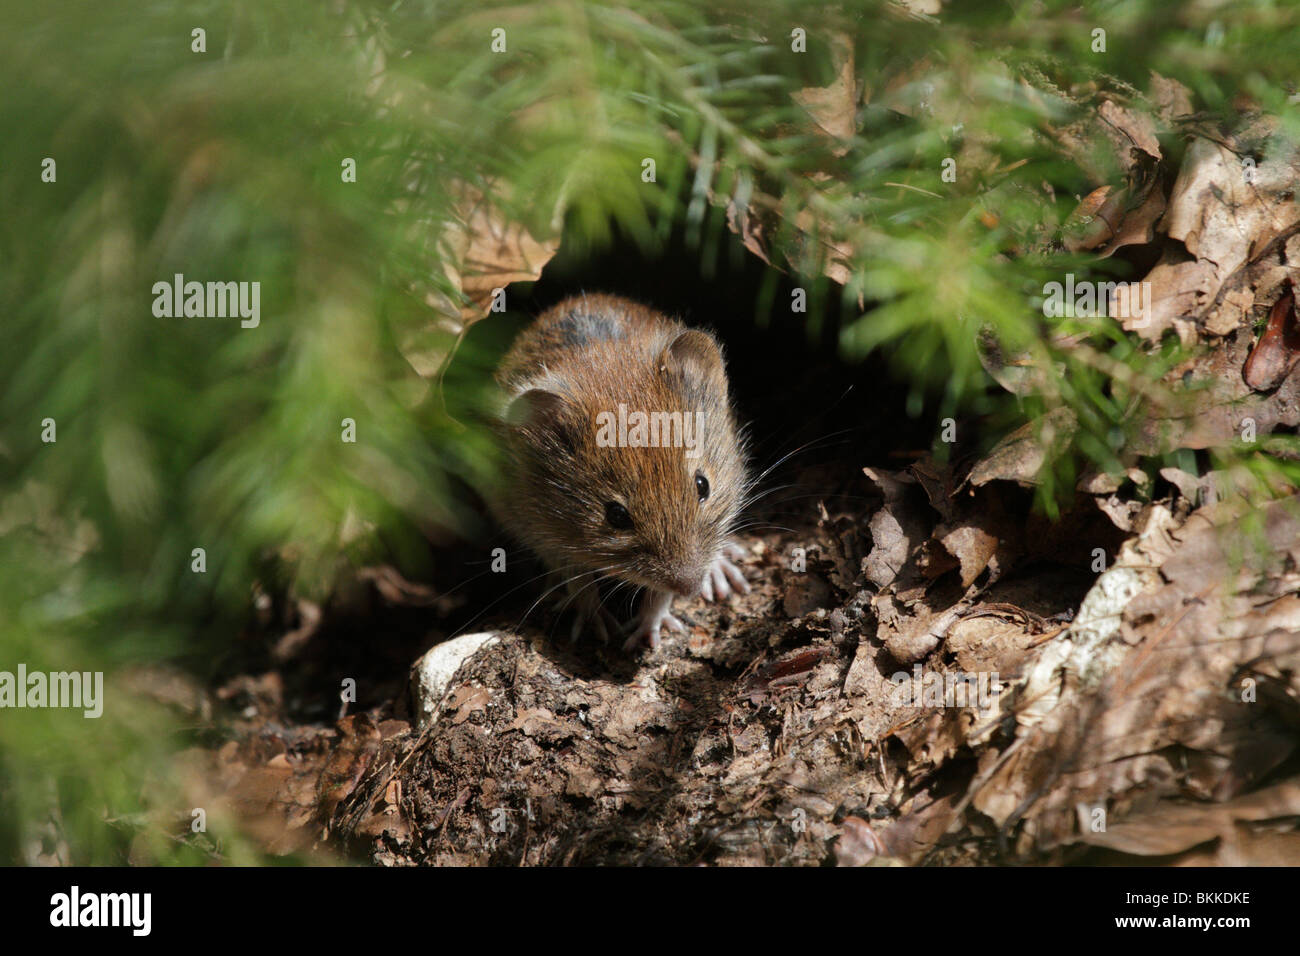 Bank Vole, Myodes glareolus, in its natural habitat in a beech forest. - Stock Image